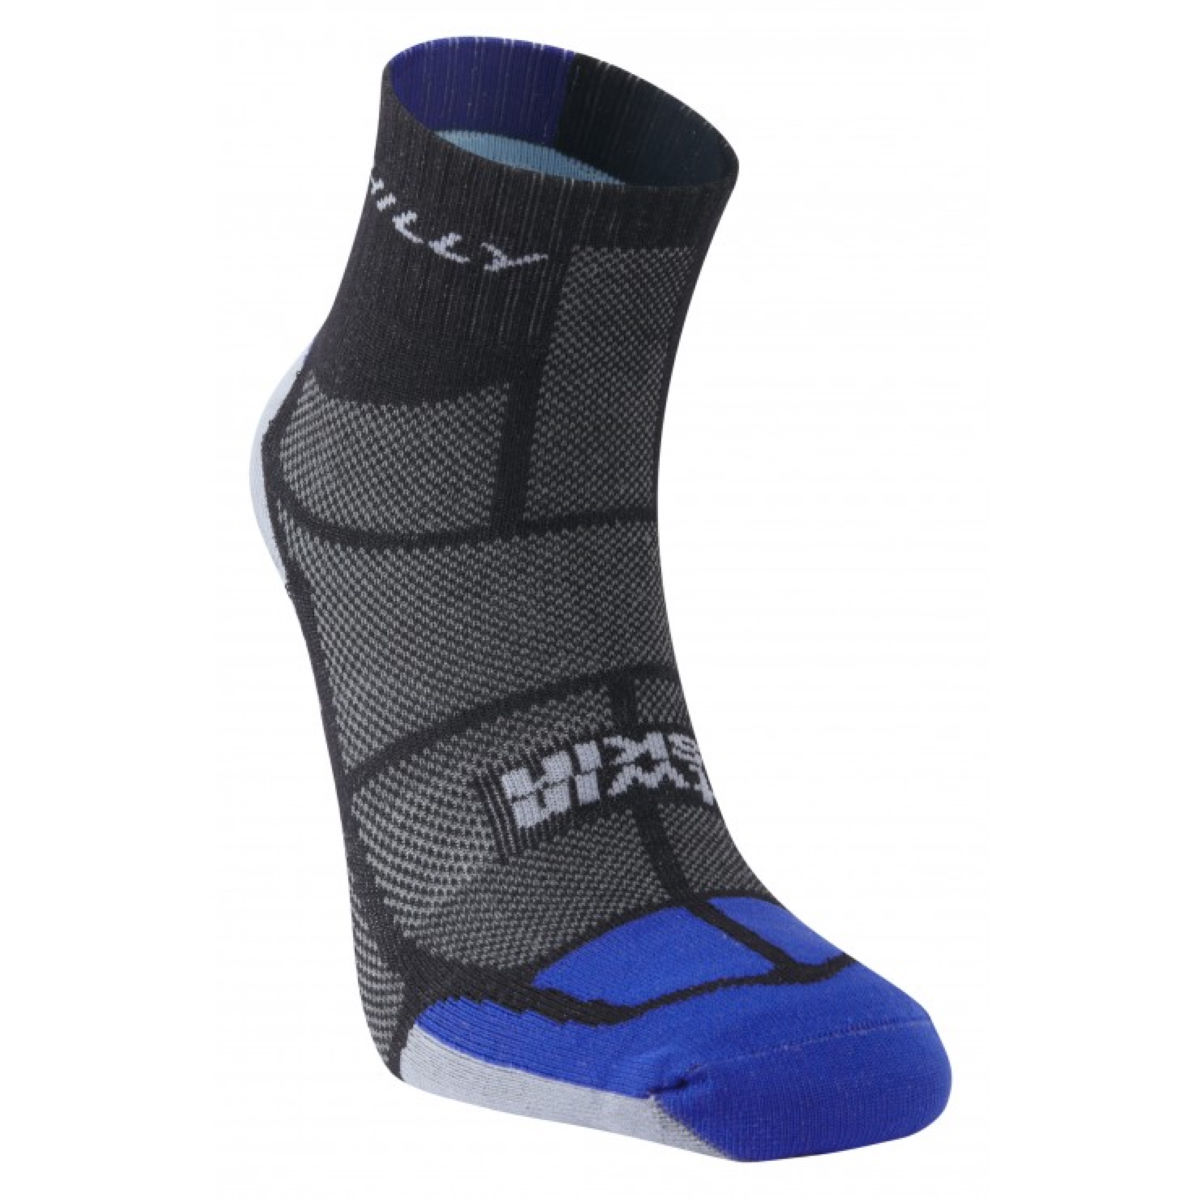 Chaussettes Hilly Twin Skin PE14 - S Black/Blue/Grey  Chaussettes